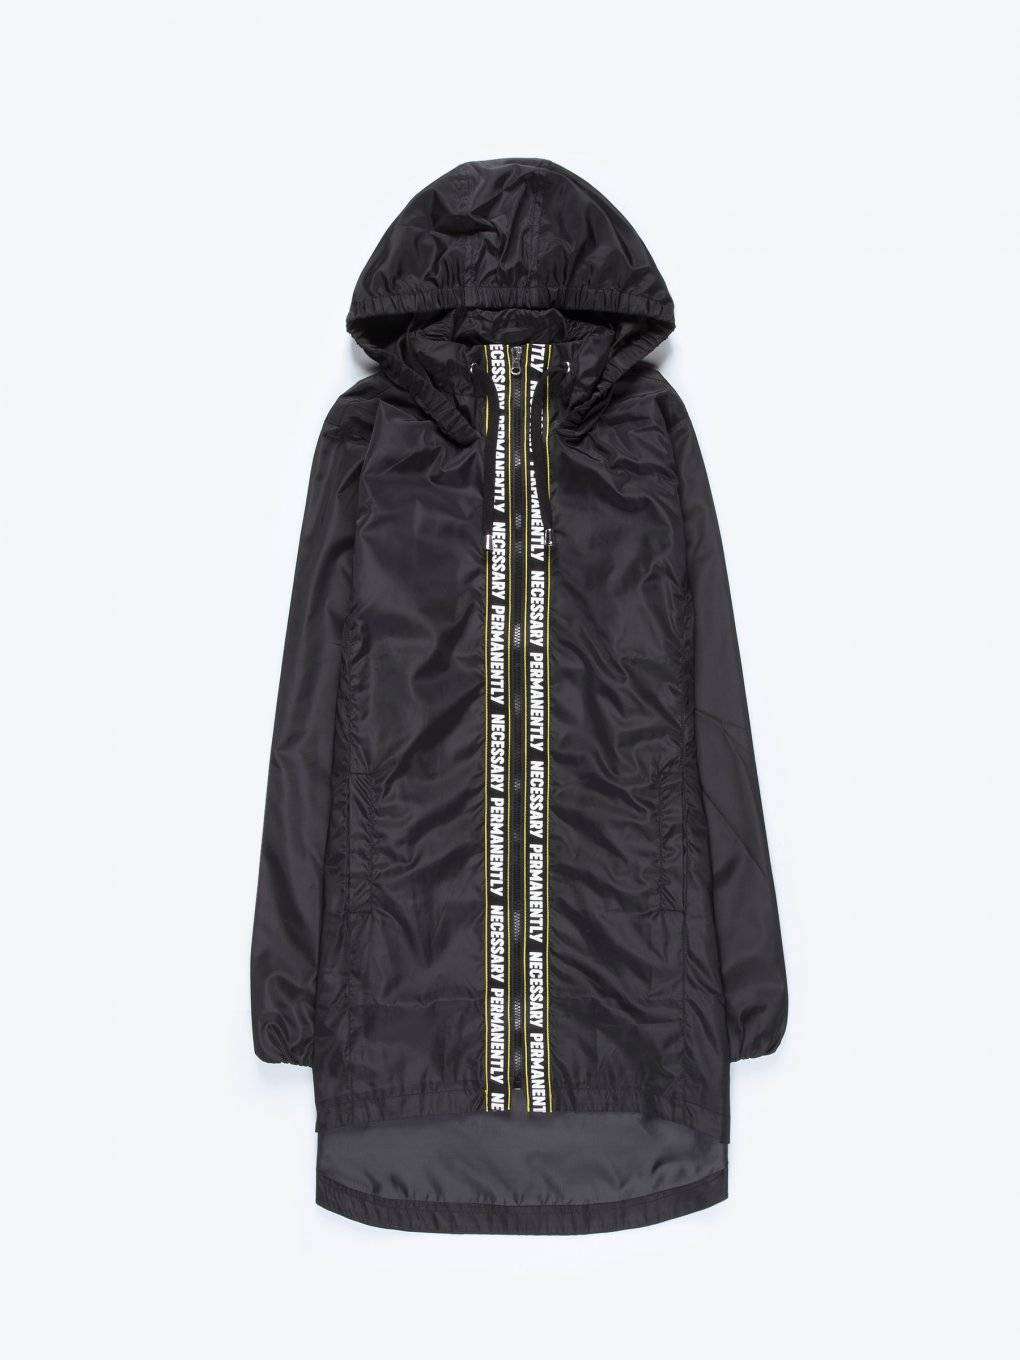 Longline taped hooded jacket with message print